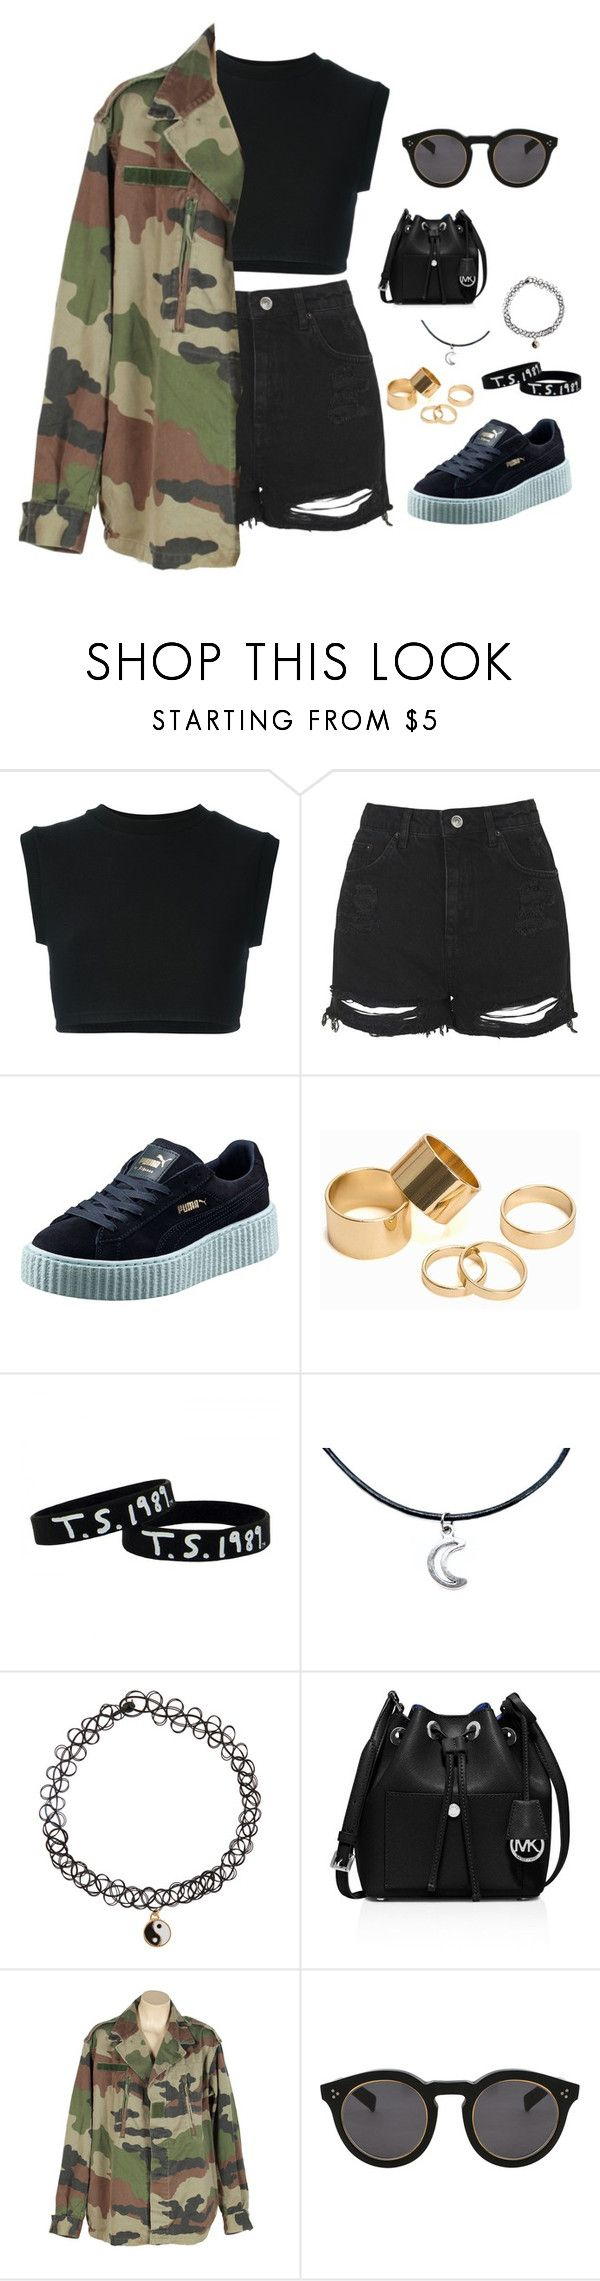 """Midnight Stroll"" by thatweirdoakira on Polyvore featuring adidas Originals, Topshop, Puma, Pieces, Accessorize, MICHAEL Michael Kors and Illesteva"